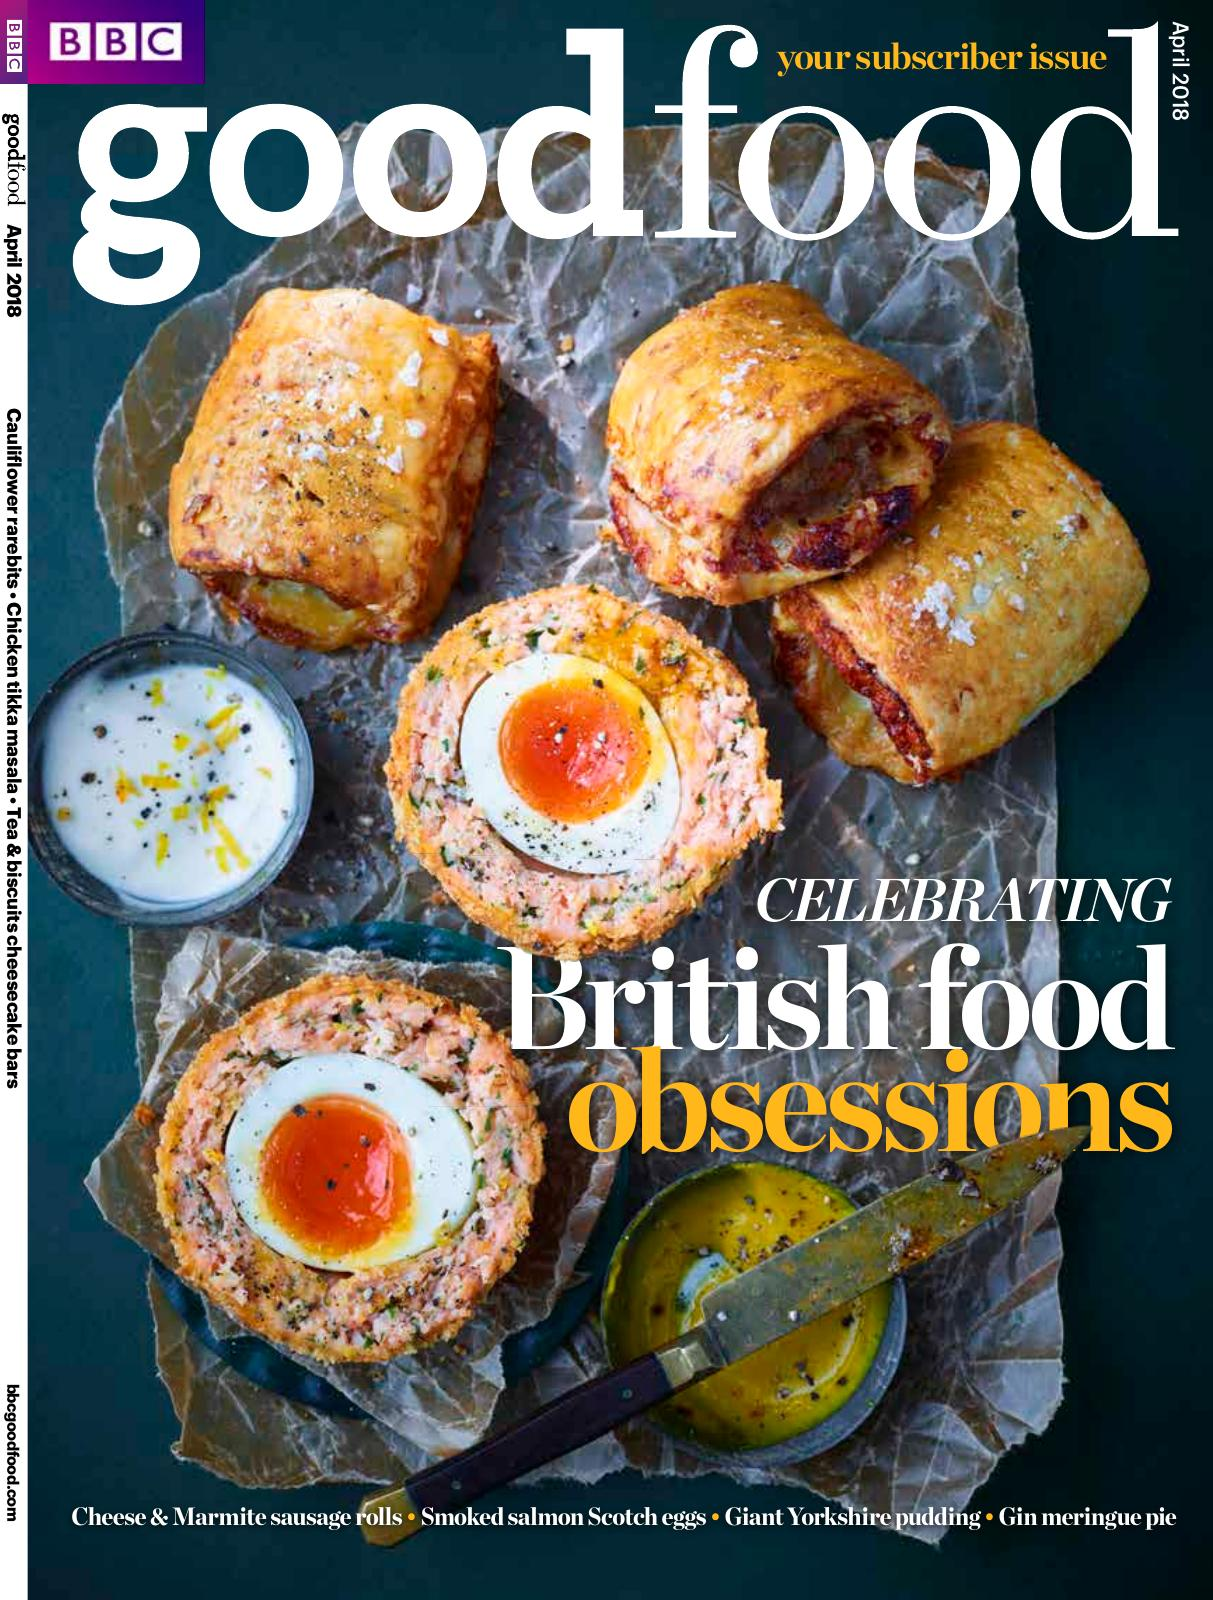 Scotch egg cover 02.jpg